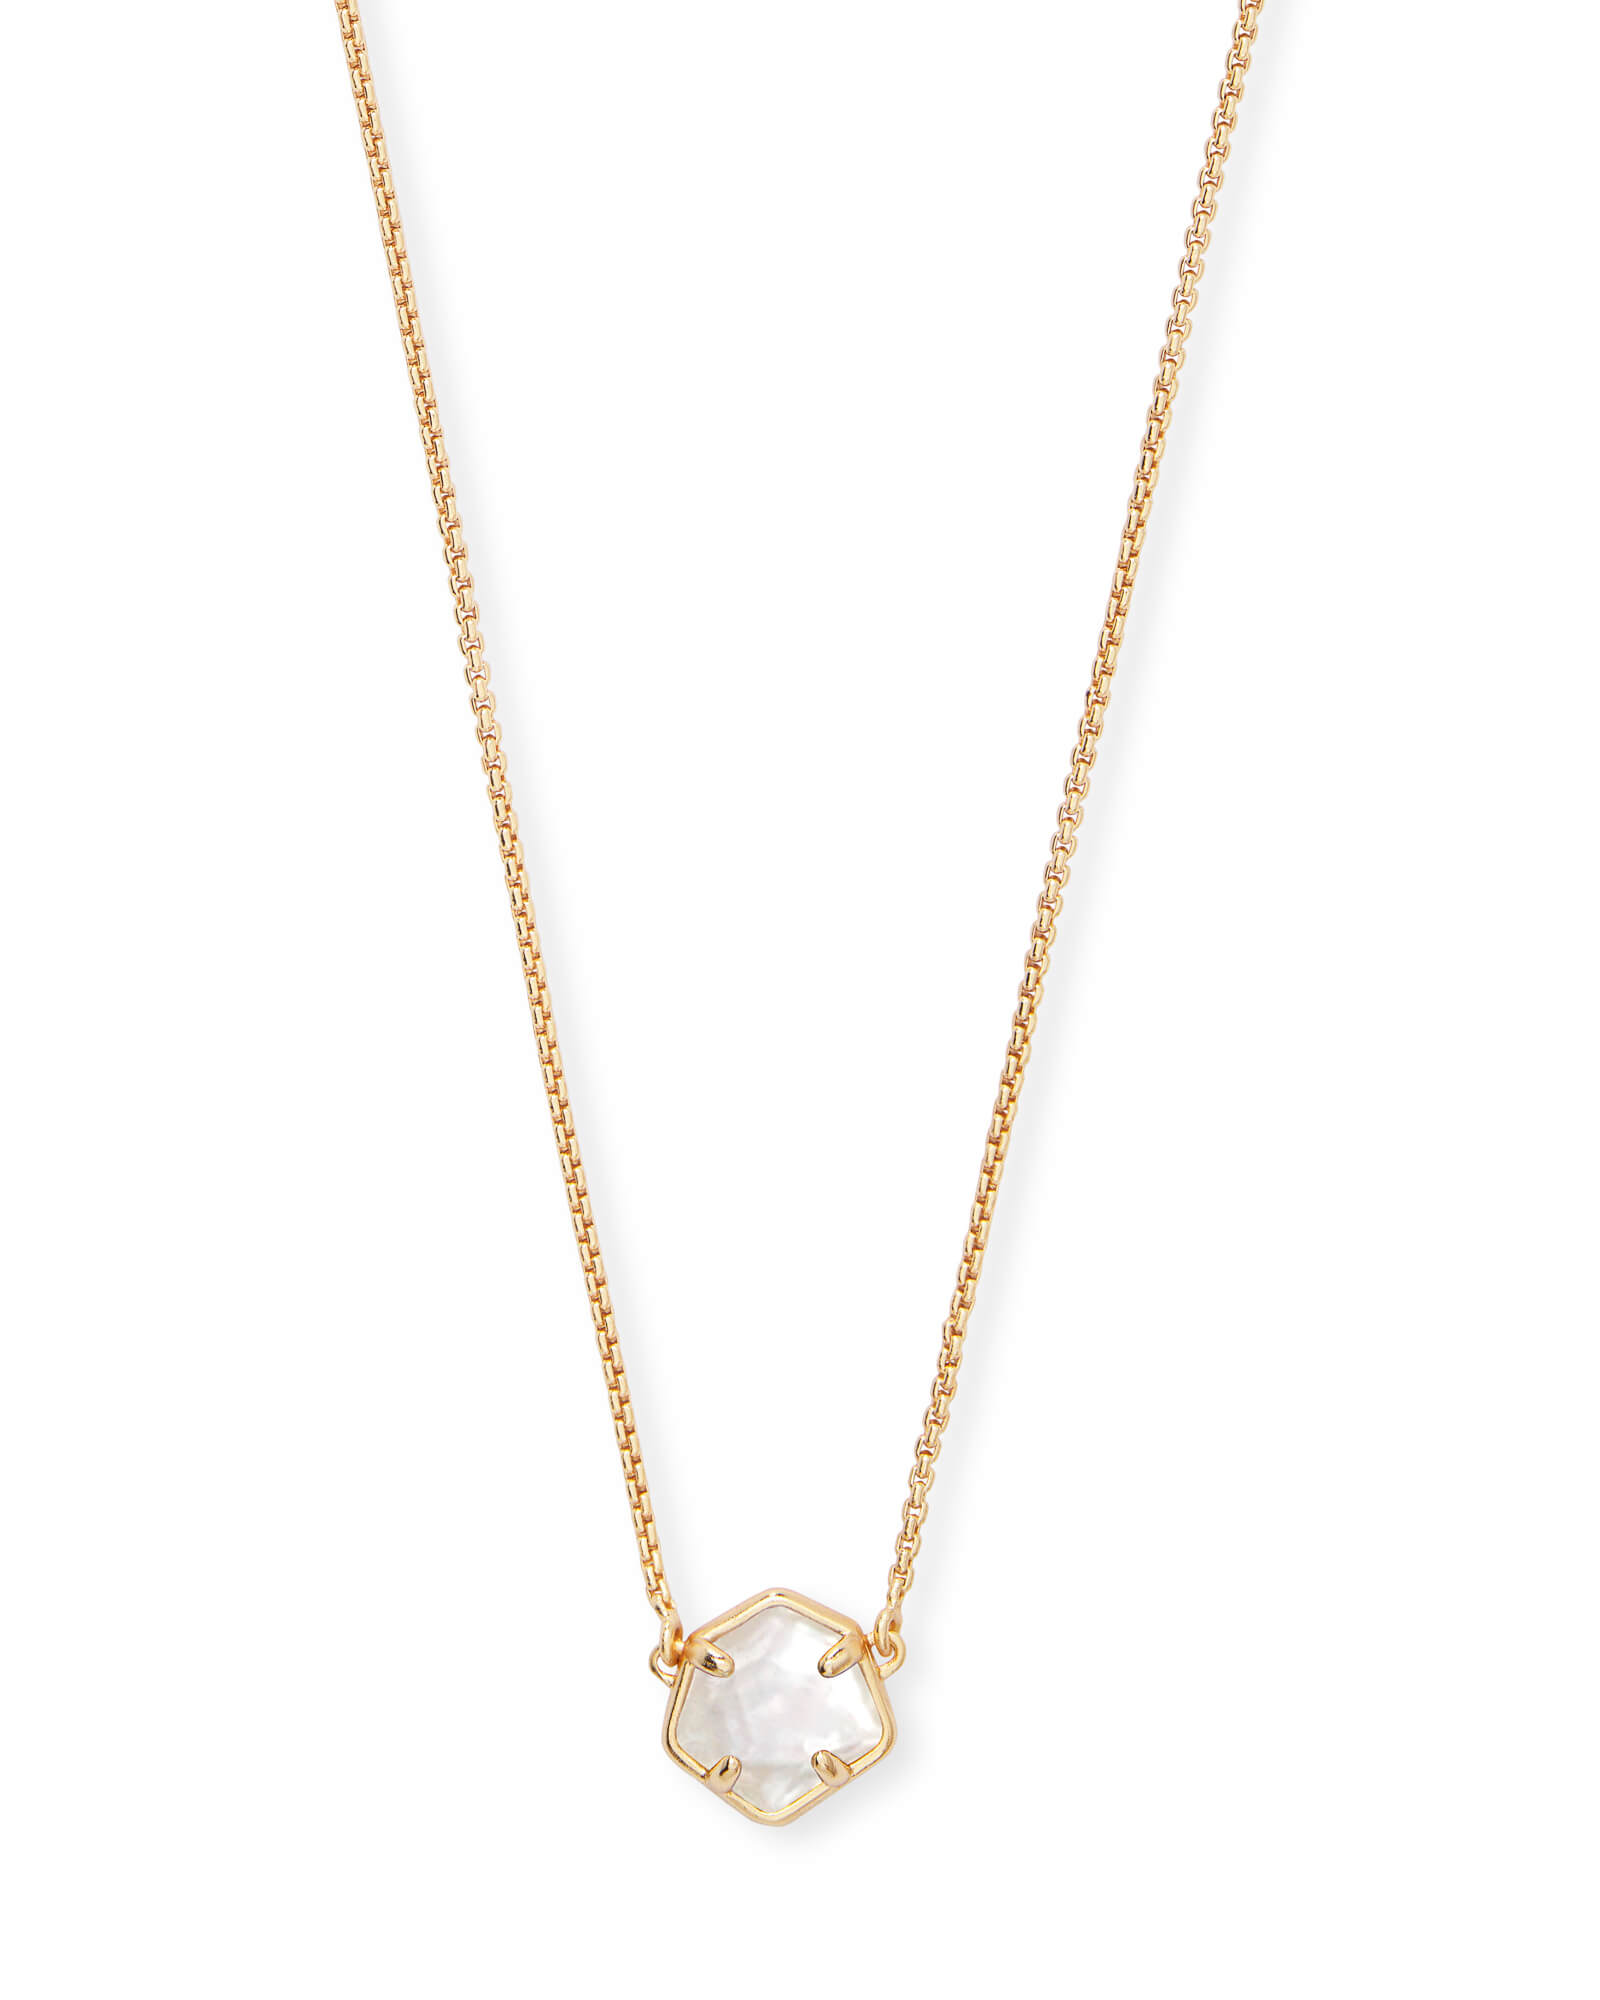 Jaxon Gold Pendant Necklace in Ivory Mother-of-Pearl